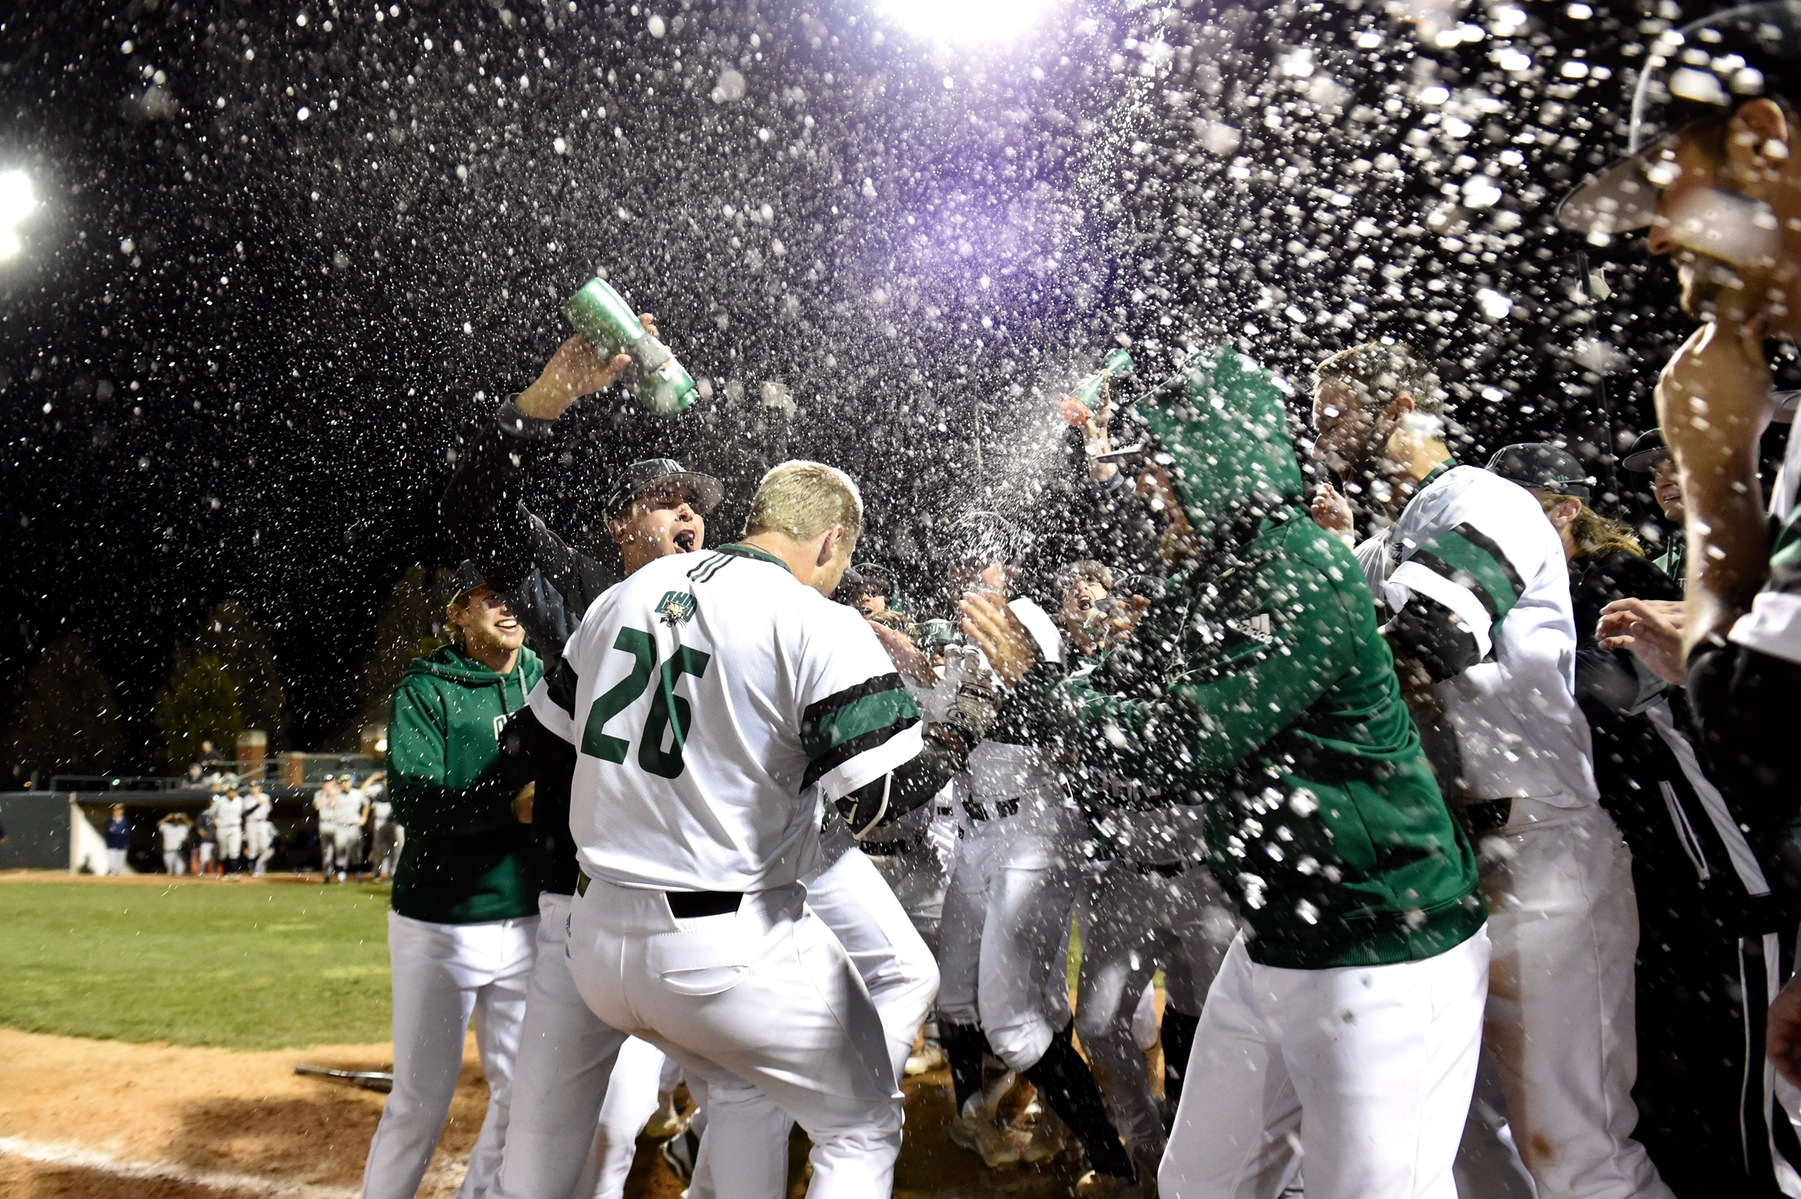 Rott's Walk-Off Home Run In Extras Lifts Ohio Baseball To Win Over Shawnee State